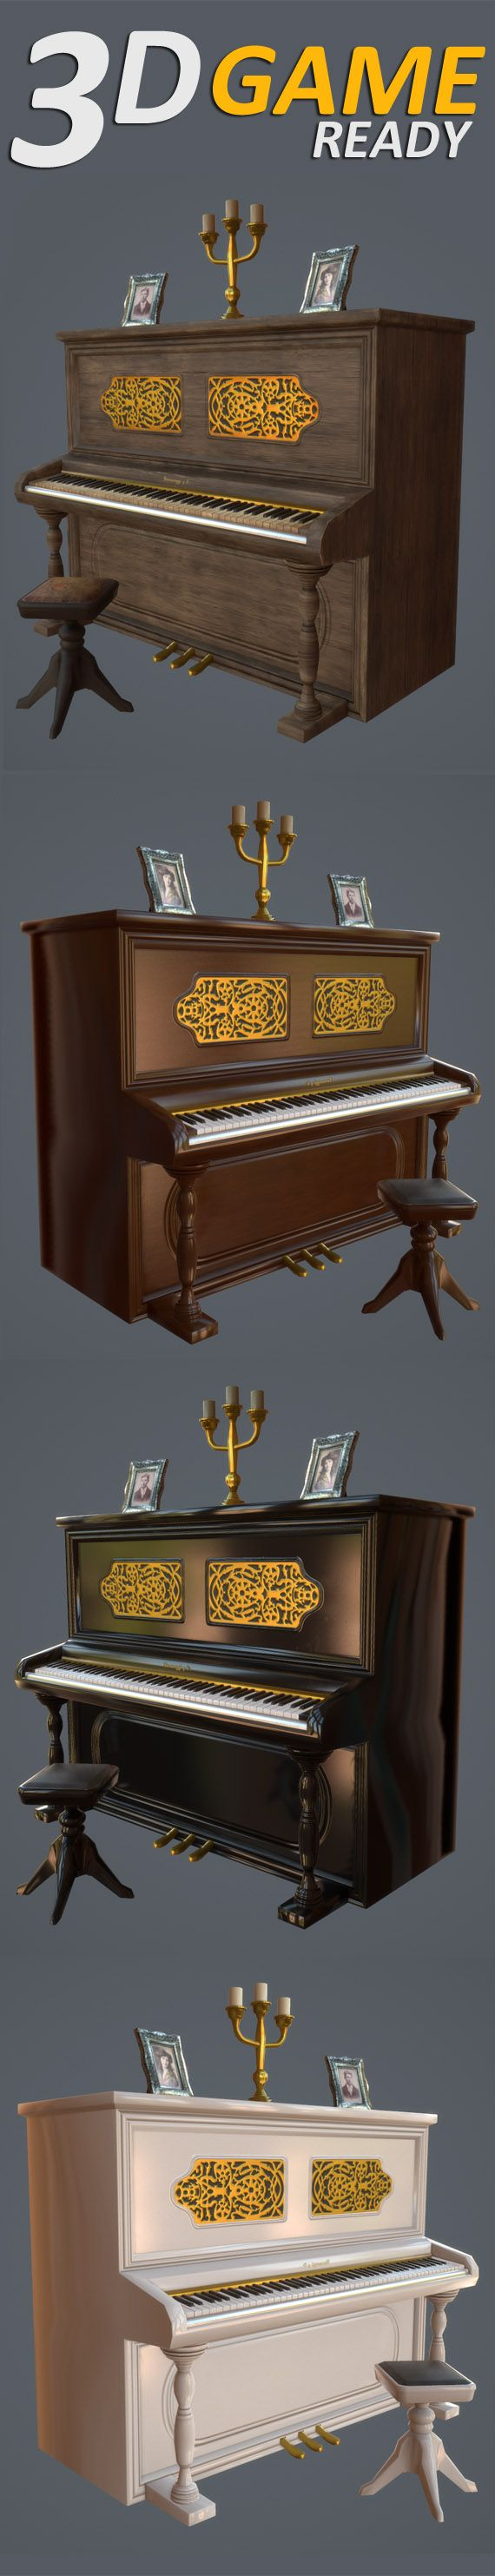 UPRIGHT PIANO. Piano with 4 level of detail + 2 versions with separate keys.  Chandelier, photo frames and chess floor texture included.  4 colors to choose: White, Black, Brown and Old Wood. * 2nd UV channel for Lightmaps.  Textures:  Albedo (.png) AO (.png) Normal Map (.png) Metallic (RGB) + glossy (A) (.tiff)